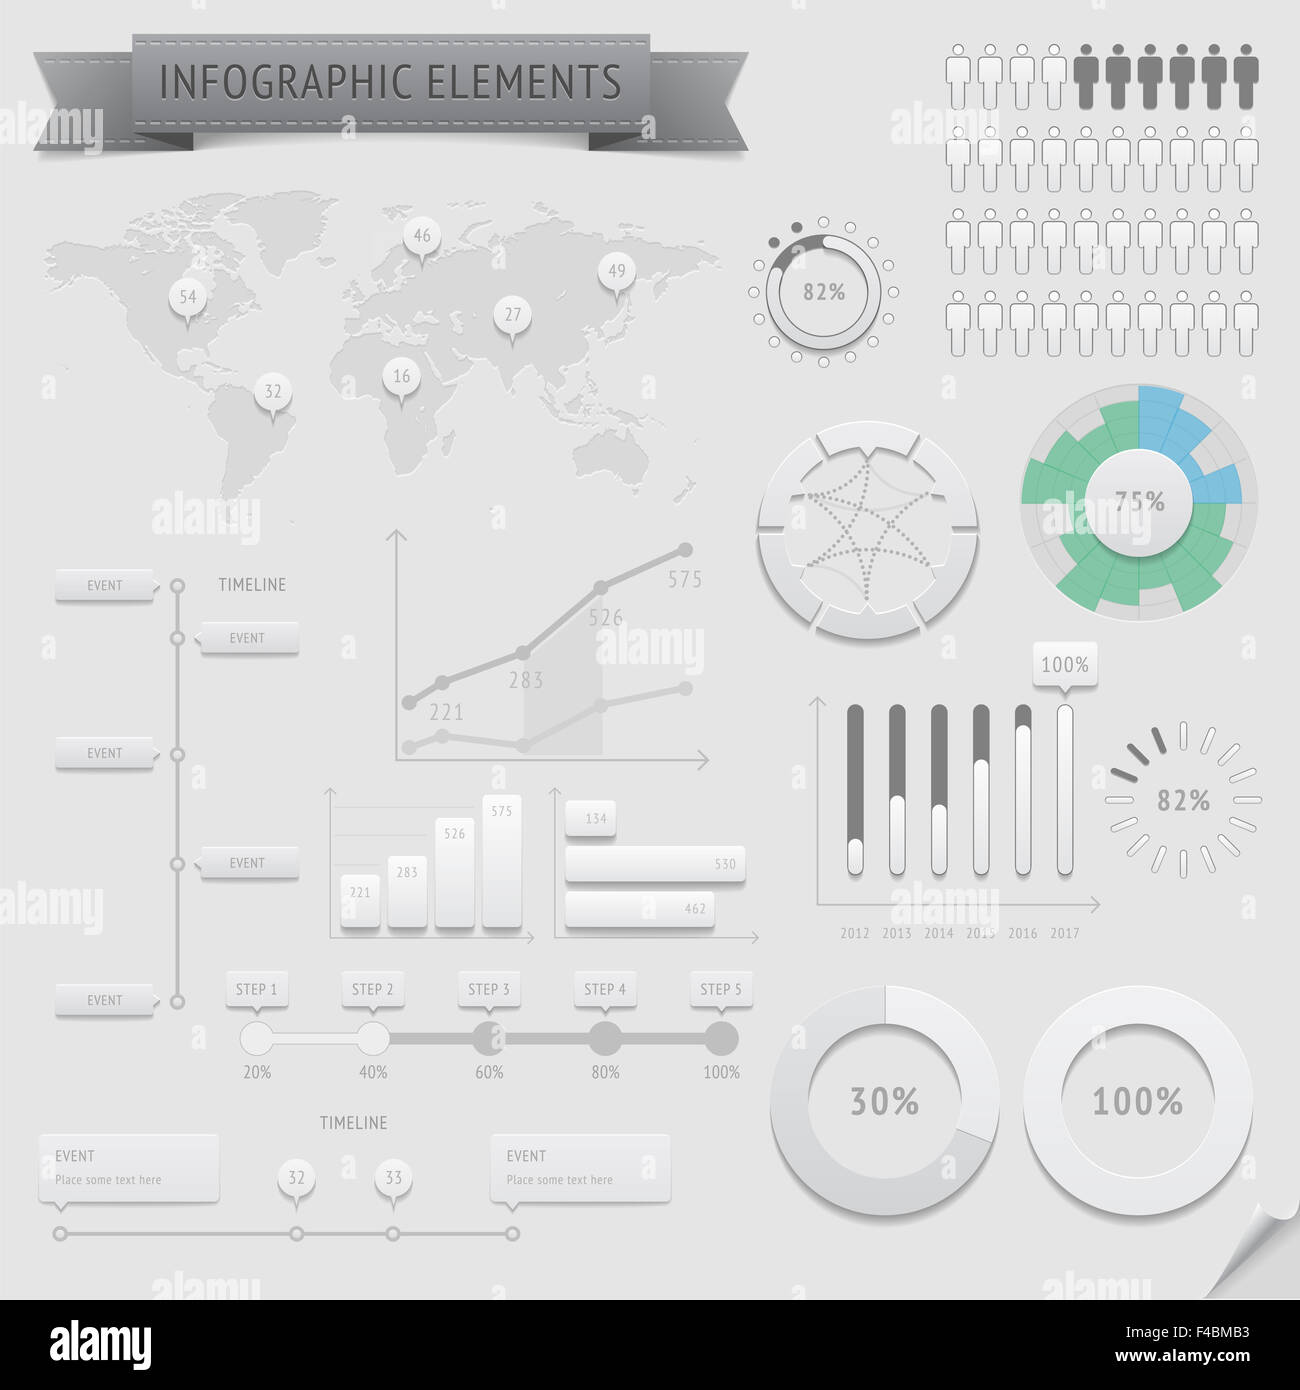 Infographic design elements - Stock Image